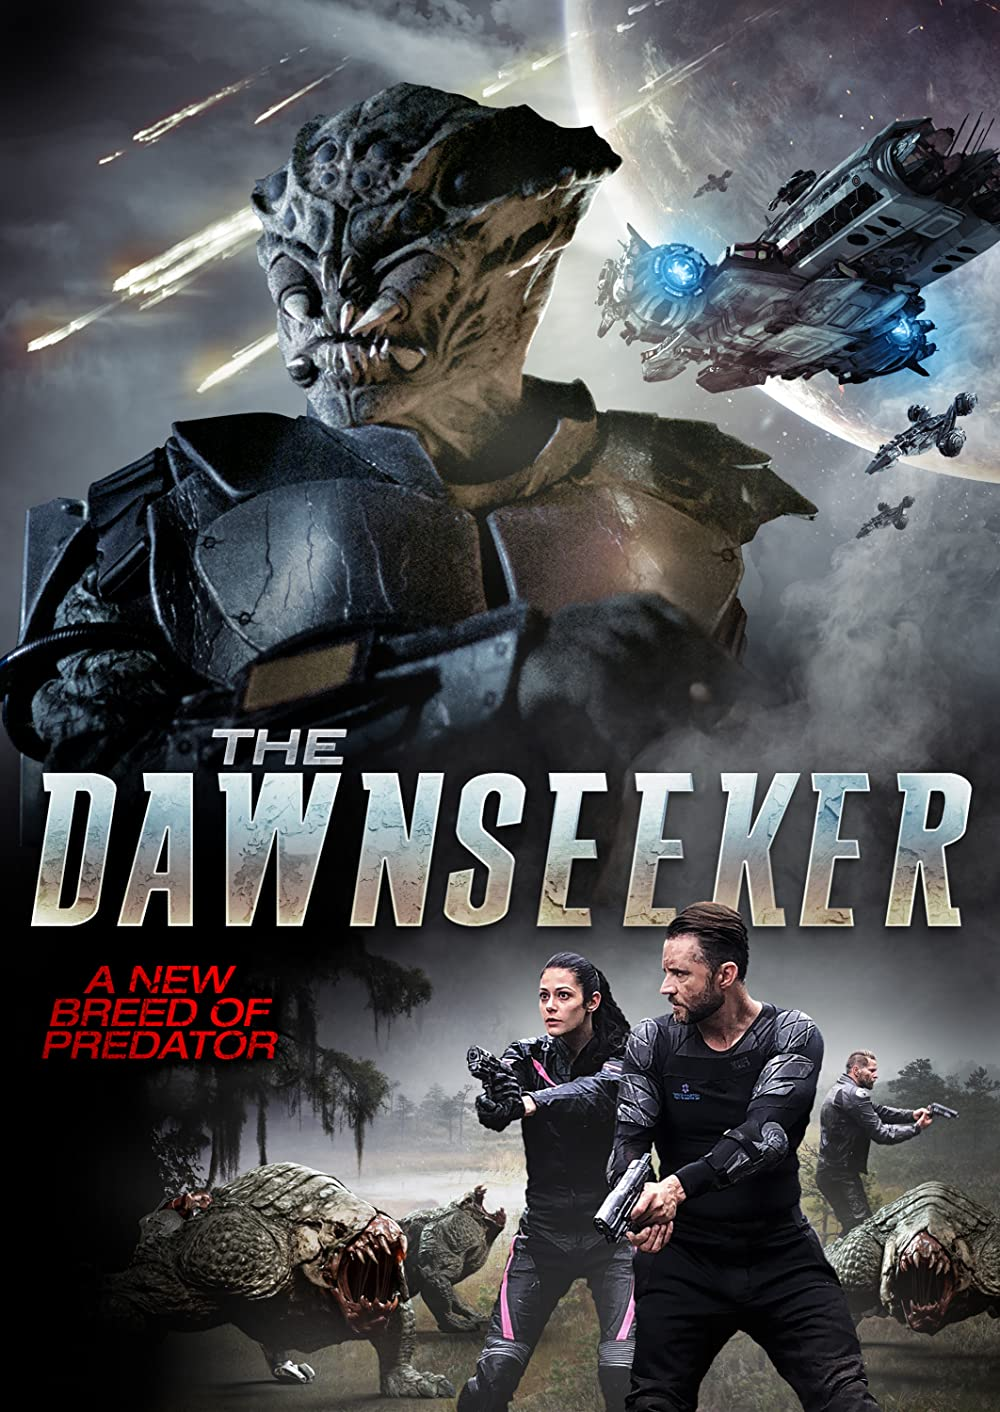 The Dawnseeker 2018 Hindi Dual Audio 1080p HDRip ESubs 1.5GB Download